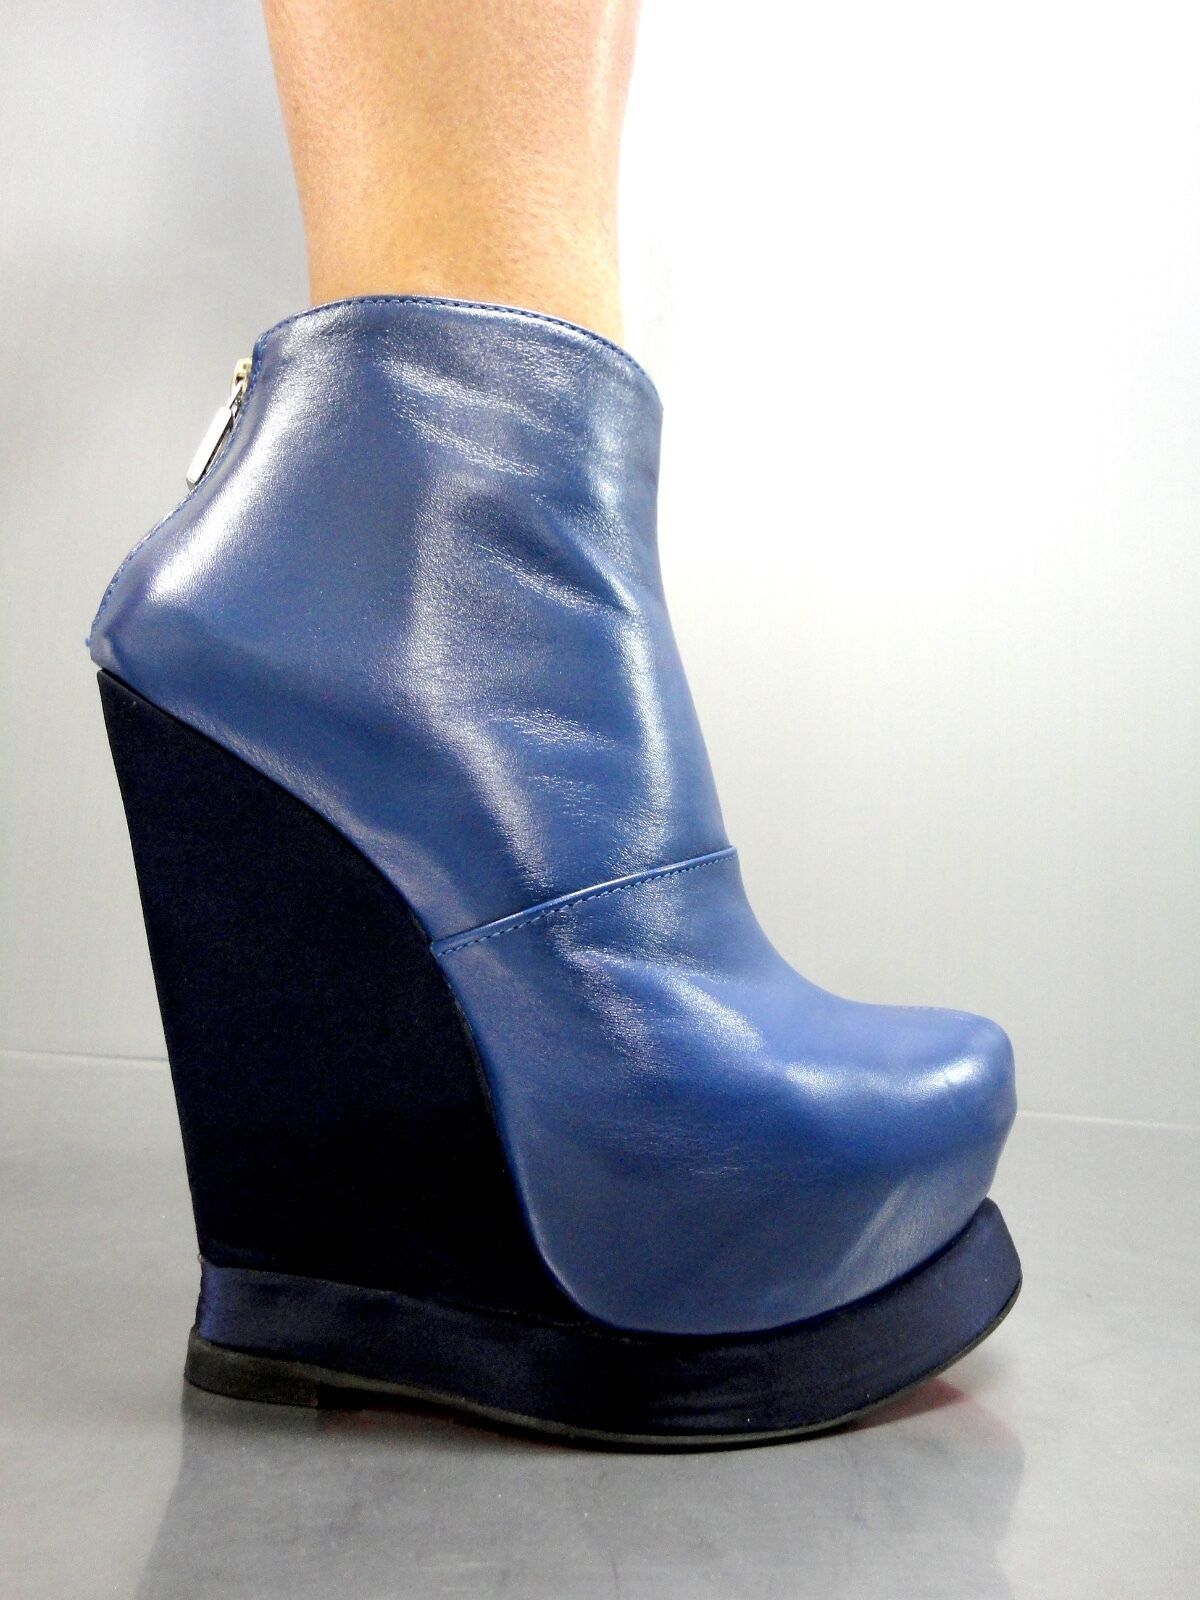 MORI ITALY WEDGES HEELS ANKLE BOOTS STIEFEL STIVALI SHOES LEATHER blueE blue 41